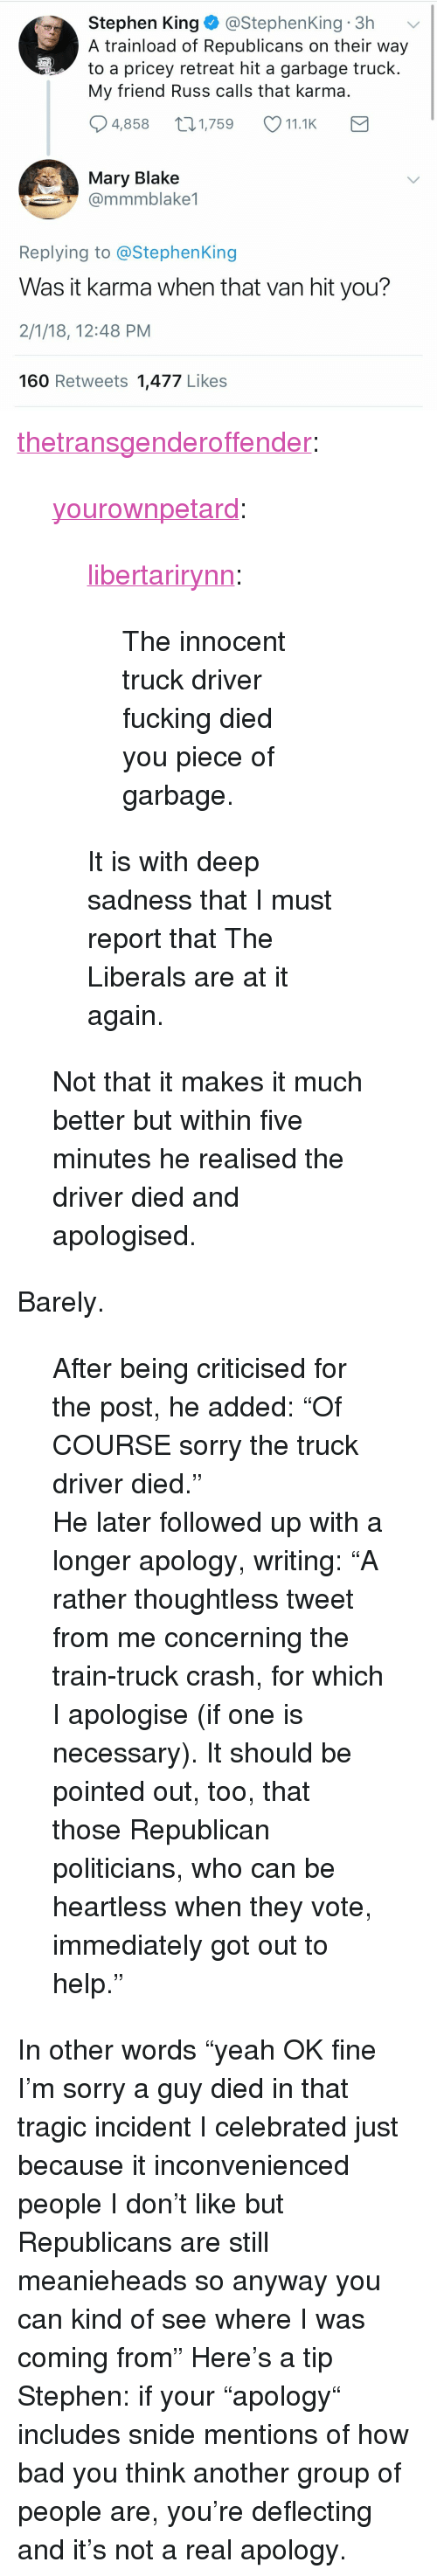 """Bad, Fucking, and Sorry: Stephen King@StephenKing 3h  A trainload of Republicans on their way  to a pricey retreat hit a garbage truck  My friend Russ calls that karma  4,858 1,759 11.1K  Mary Blake  @mmmblake1  Replying to @StephenKing  Was it karma when that van hit you?  2/1/18, 12:48 PM  160 Retweets 1,477 Likes <p><a href=""""https://thetransgenderoffender.tumblr.com/post/170545093910/yourownpetard-libertarirynn-the-innocent-truck"""" class=""""tumblr_blog"""">thetransgenderoffender</a>:</p> <blockquote> <p><a href=""""https://yourownpetard.tumblr.com/post/170544339014/libertarirynn-the-innocent-truck-driver-fucking"""" class=""""tumblr_blog"""">yourownpetard</a>:</p>  <blockquote> <p><a href=""""https://libertarirynn.tumblr.com/post/170544274549/the-innocent-truck-driver-fucking-died-you-piece"""" class=""""tumblr_blog"""">libertarirynn</a>:</p> <blockquote><p>The innocent truck driver fucking died you piece of garbage.</p></blockquote> <p>It is with deep sadness that I must report that The Liberals are at it again.</p> </blockquote>  <p>Not that it makes it much better but within five minutes he realised the driver died and apologised.</p> </blockquote> <p>Barely.  </p><blockquote><p> After being criticised for the post, he added: """"Of COURSE sorry the truck driver died.""""  <br/></p><p>He later followed up with a longer apology, writing: """"A rather thoughtless tweet from me concerning the train-truck crash, for which I apologise (if one is necessary). It should be pointed out, too, that those Republican politicians, who can be heartless when they vote, immediately got out to help.""""</p></blockquote> In other words """"yeah OK fine I'm sorry a guy died in that tragic incident I celebrated just because it inconvenienced people I don't like but Republicans are still meanieheads so anyway you can kind of see where I was coming from"""" Here's a tip Stephen: if your """"apology"""" includes snide mentions of how bad you think another group of people are, you're deflecting and it's not a real apology."""